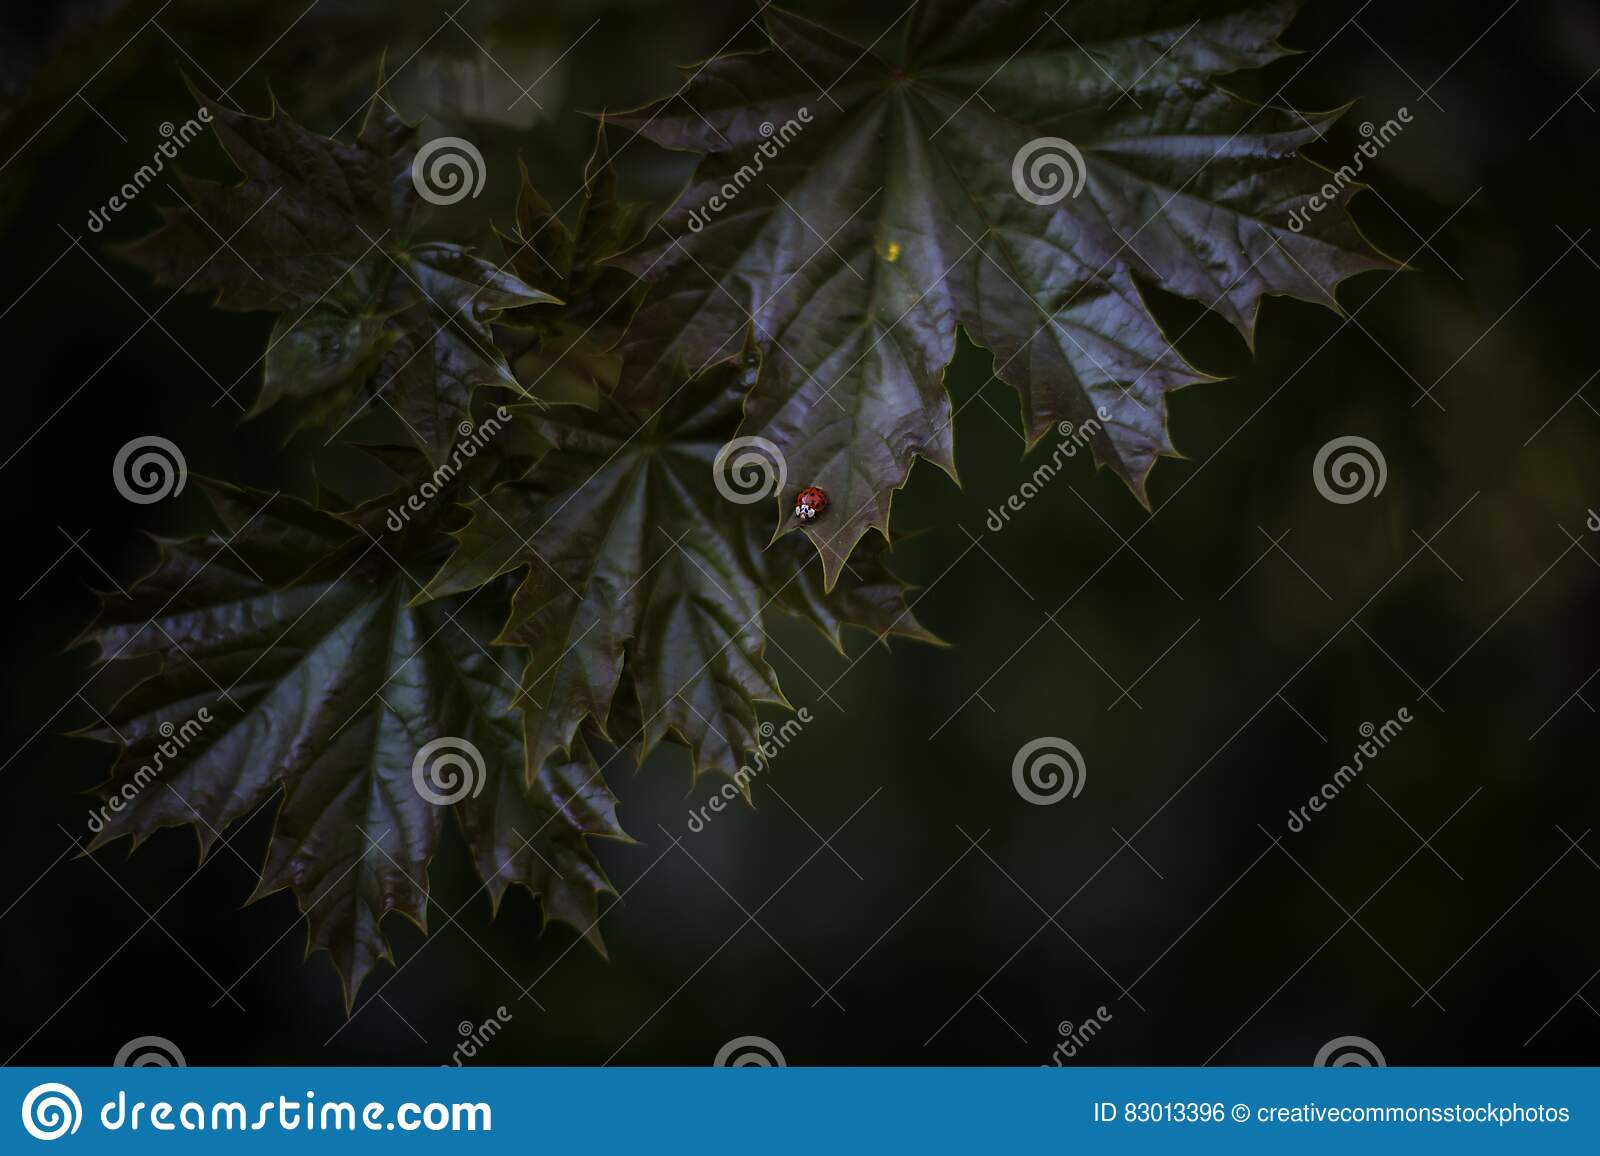 Download Macro Photography Of Tree Leaves Stock Photo - Image of ladybird, green: 83013396